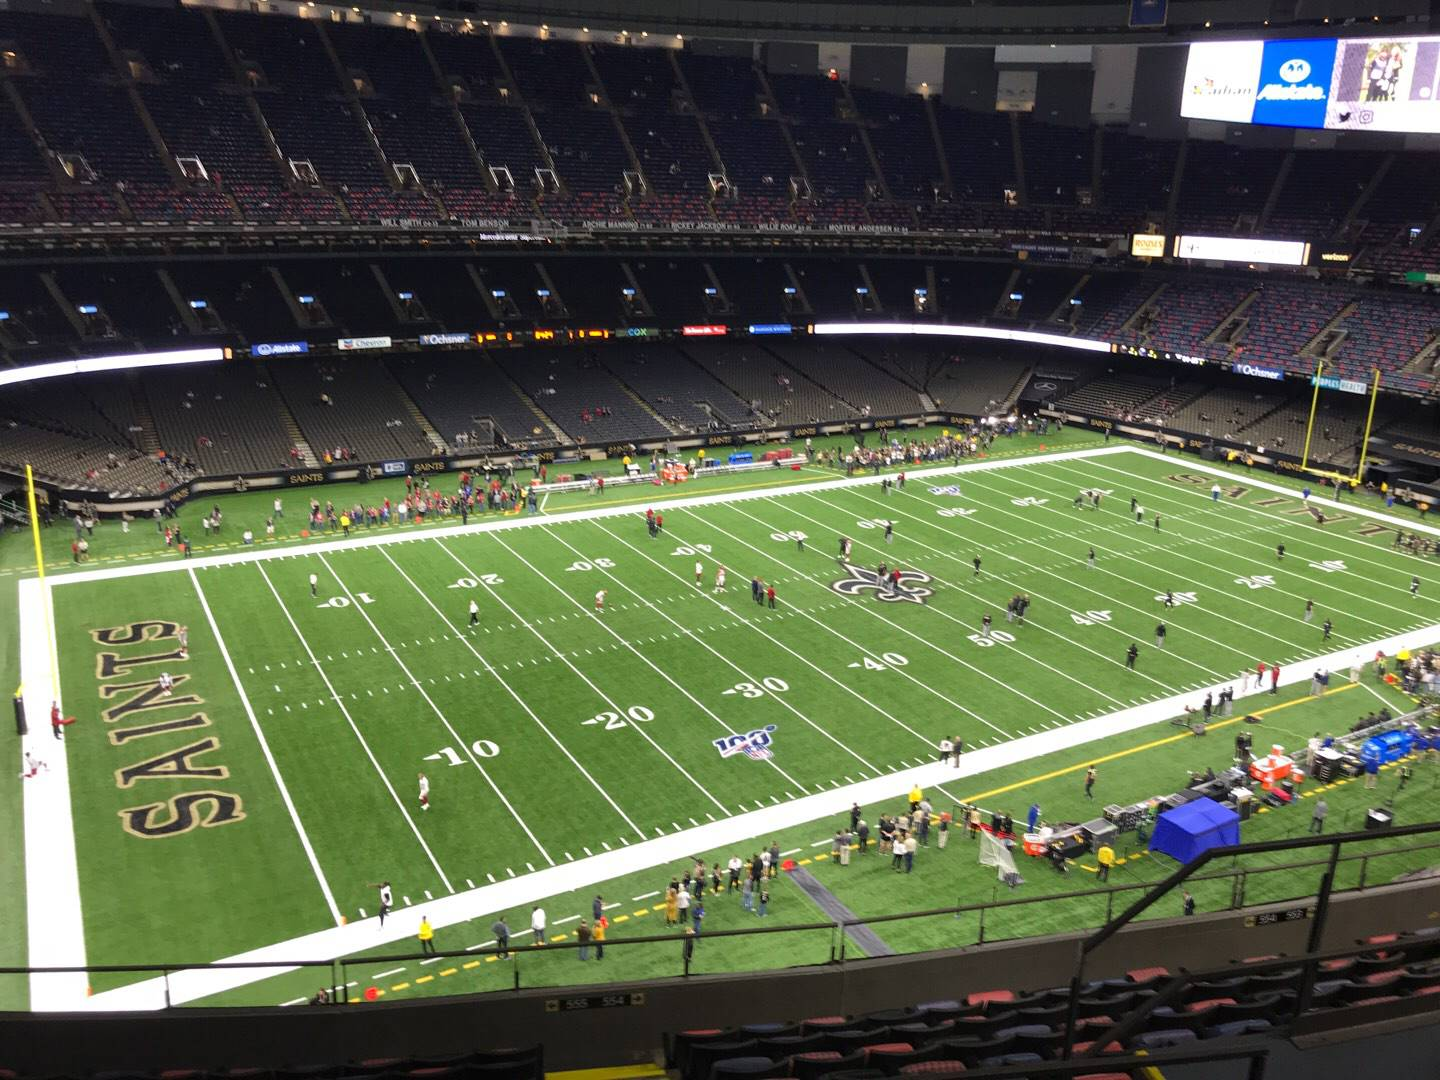 Mercedes-Benz Superdome Section 645 Row 11 Seat 7